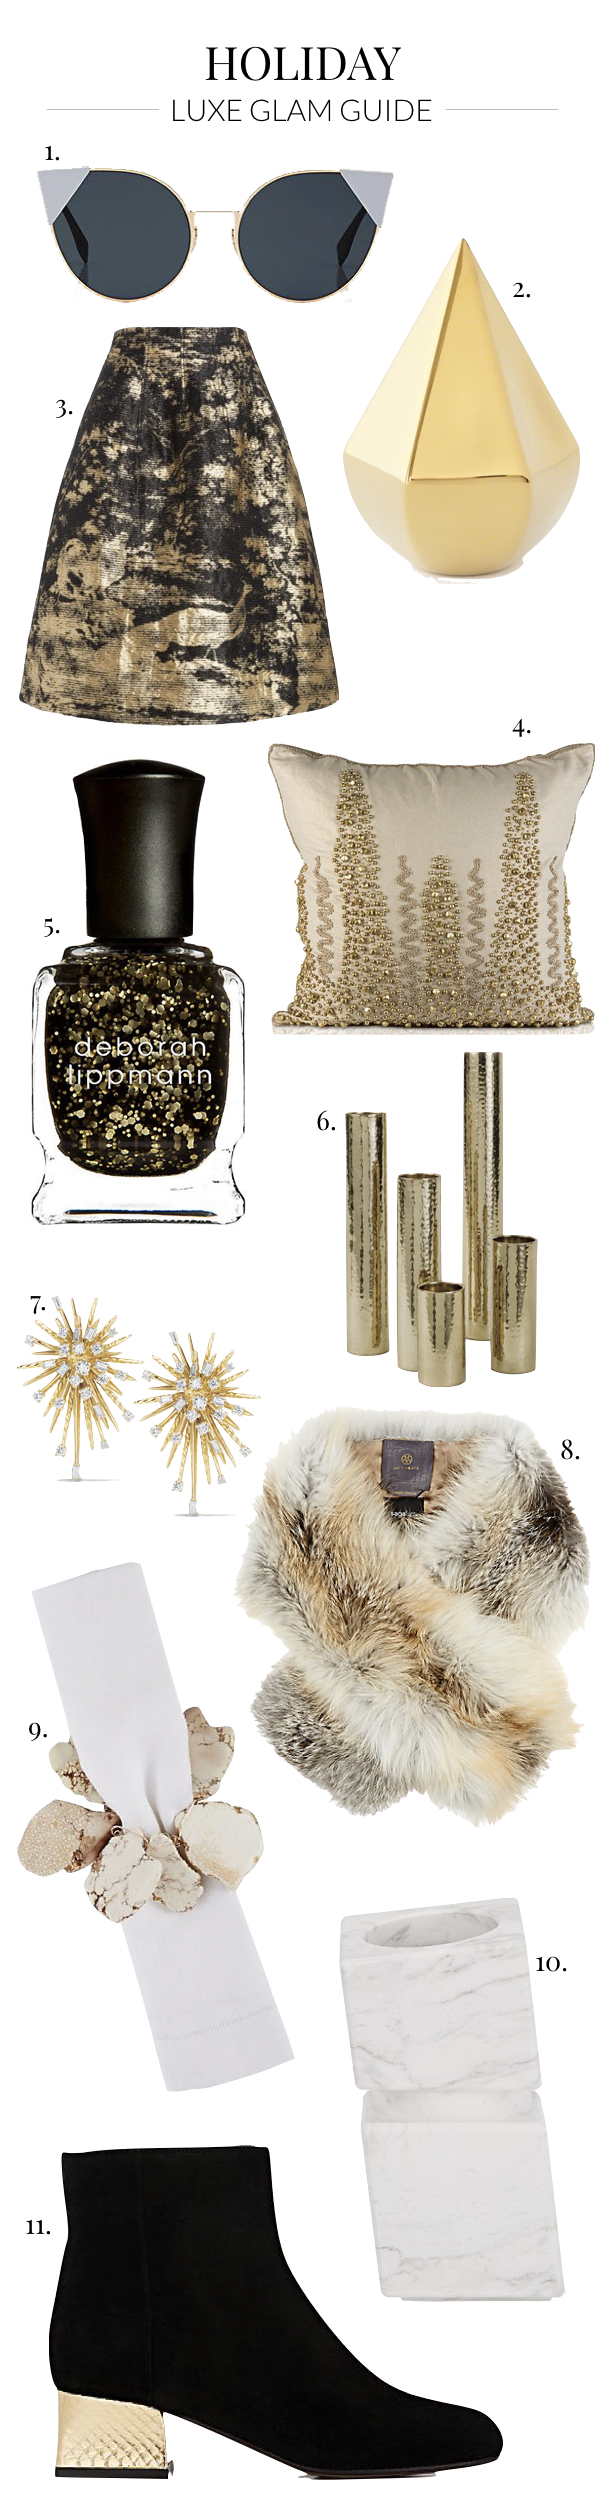 holiday-glam-guide-2016-001